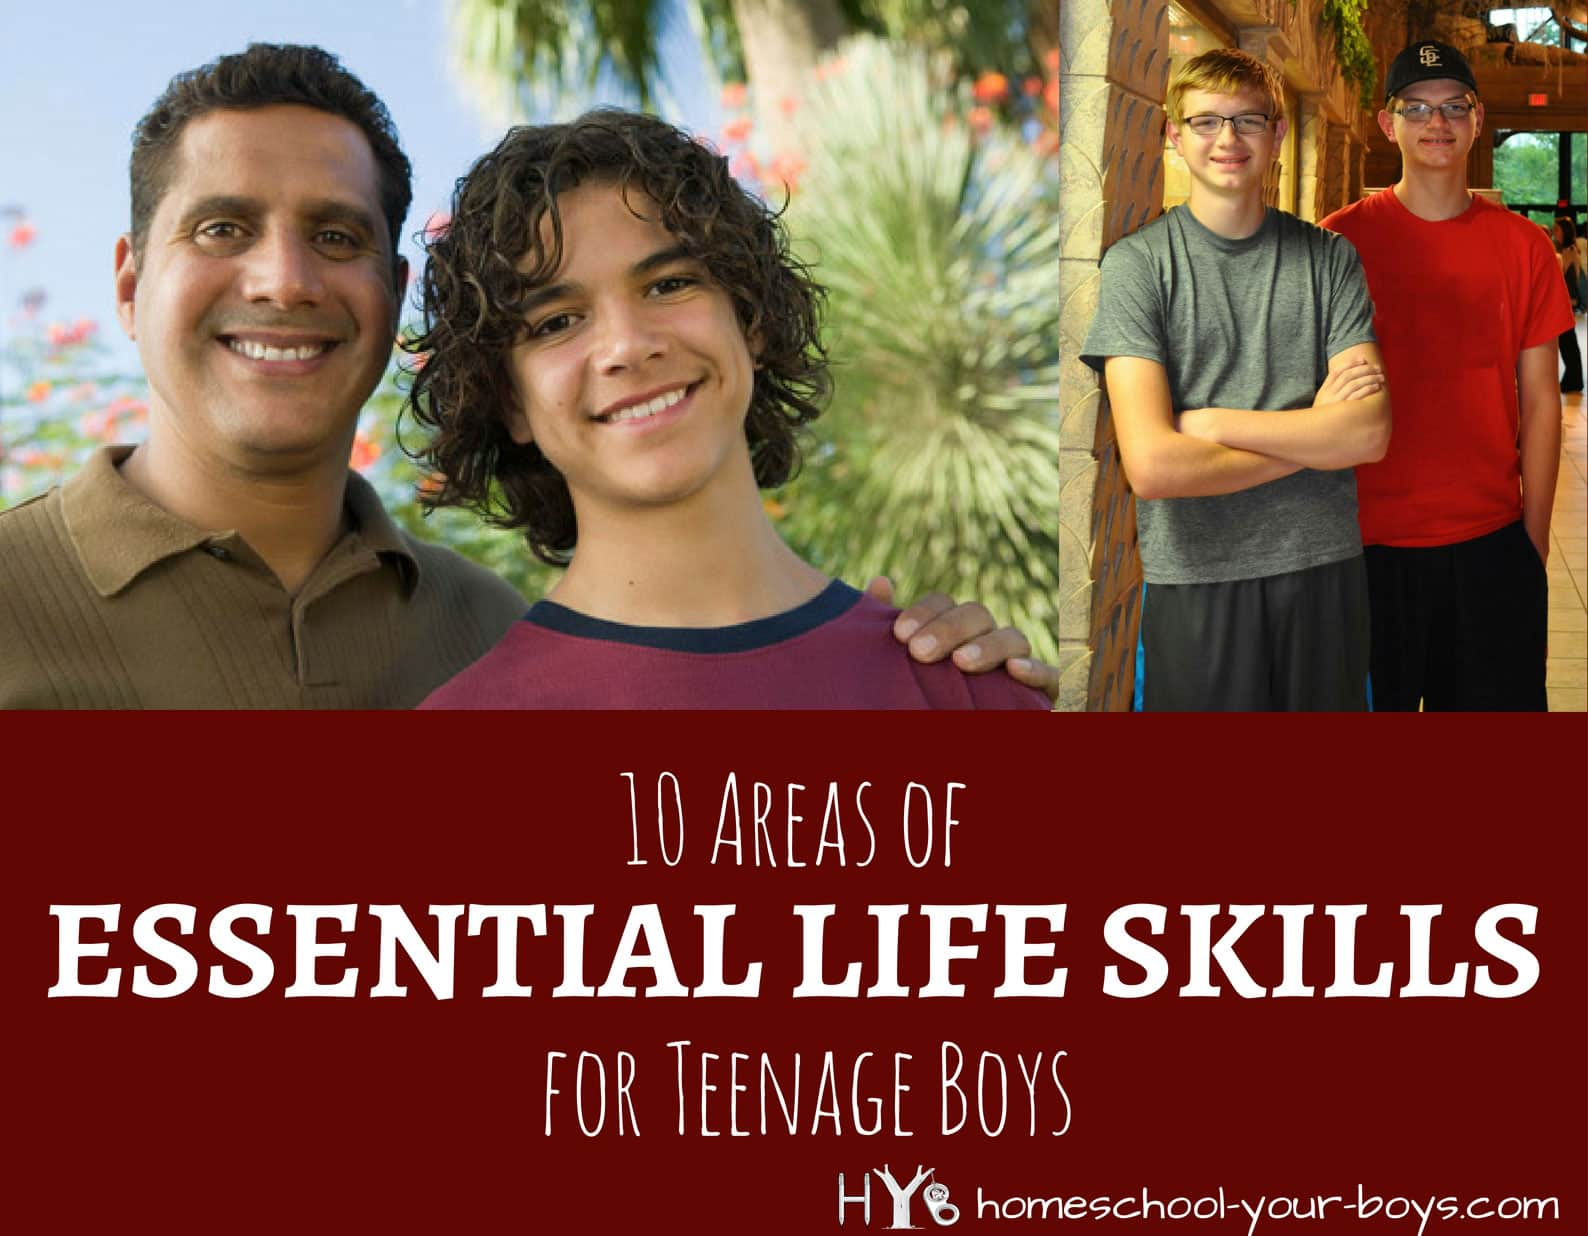 10 Areas of Essential Life Skills for Teenage Boys